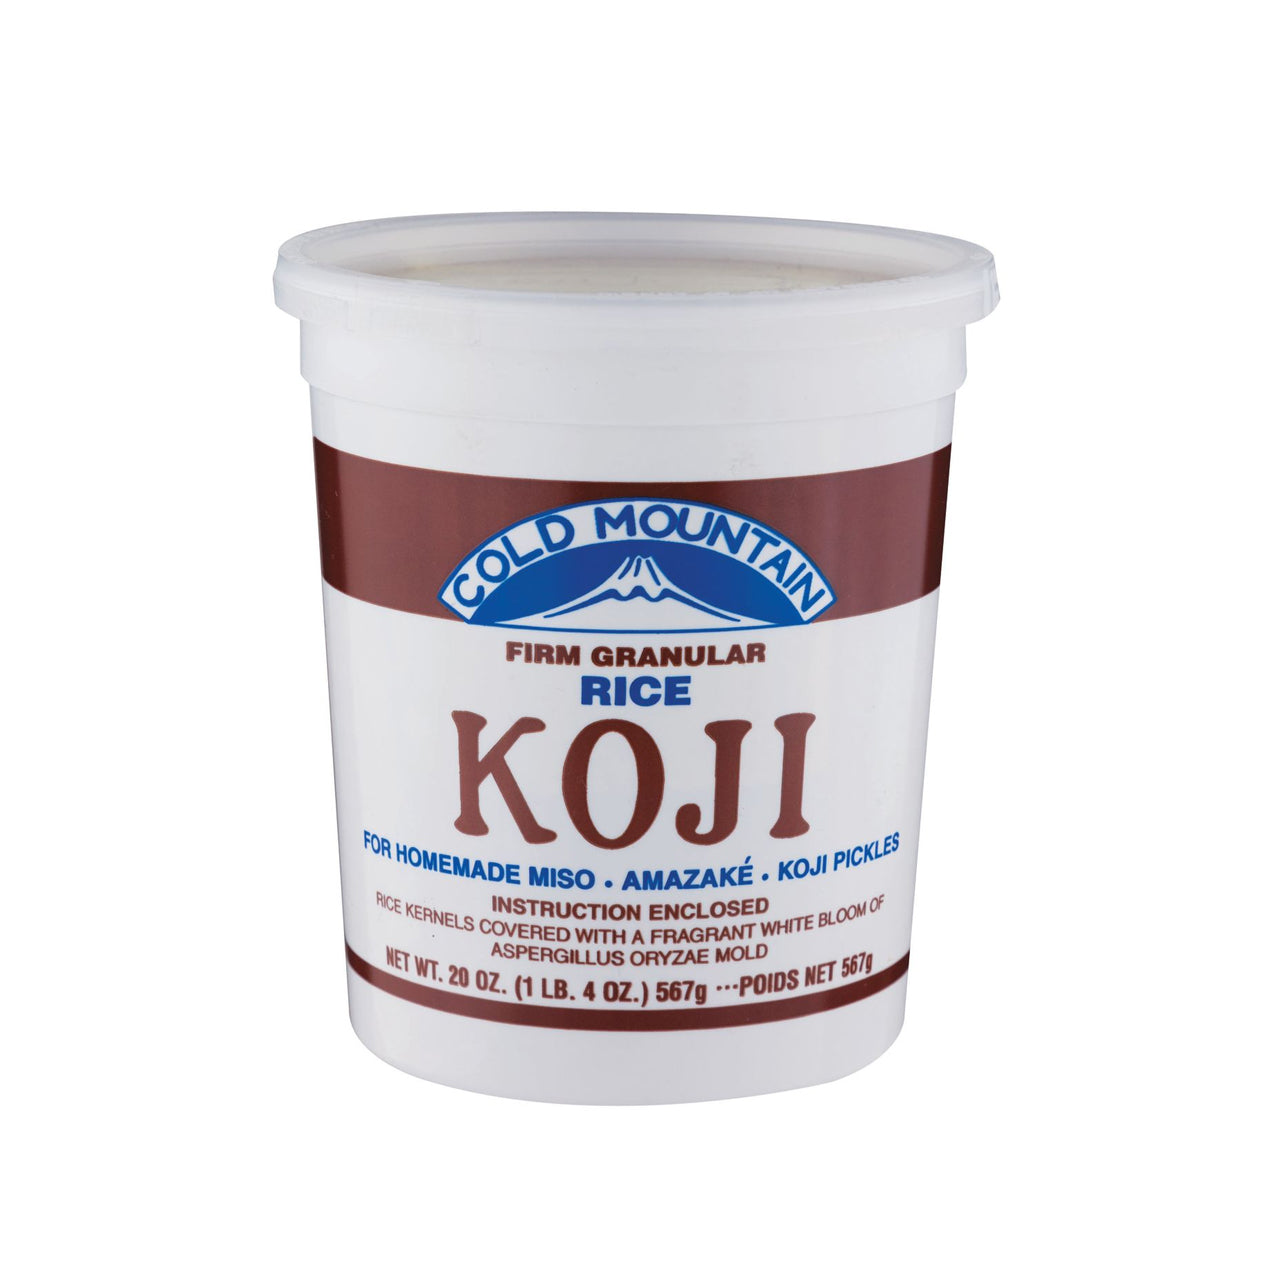 Cold Mountain Dry Koji Rice 20oz (567g) (SKU: 20201)